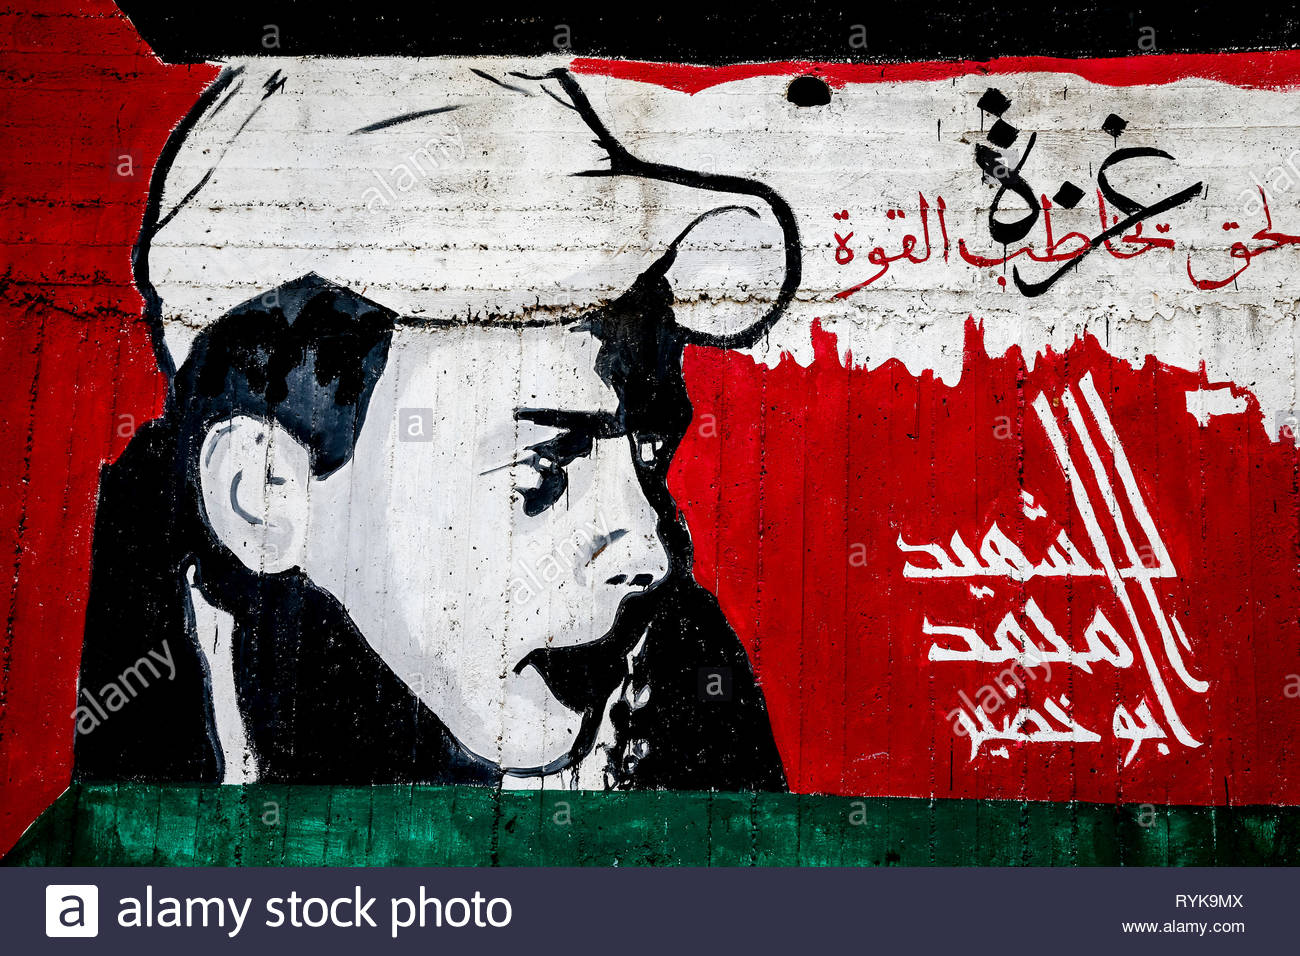 Wall art in Nazareth, Israel : portrait of Gaza shaheed (freedom fighter) Mohammed Abu Khdeir - Stock Image